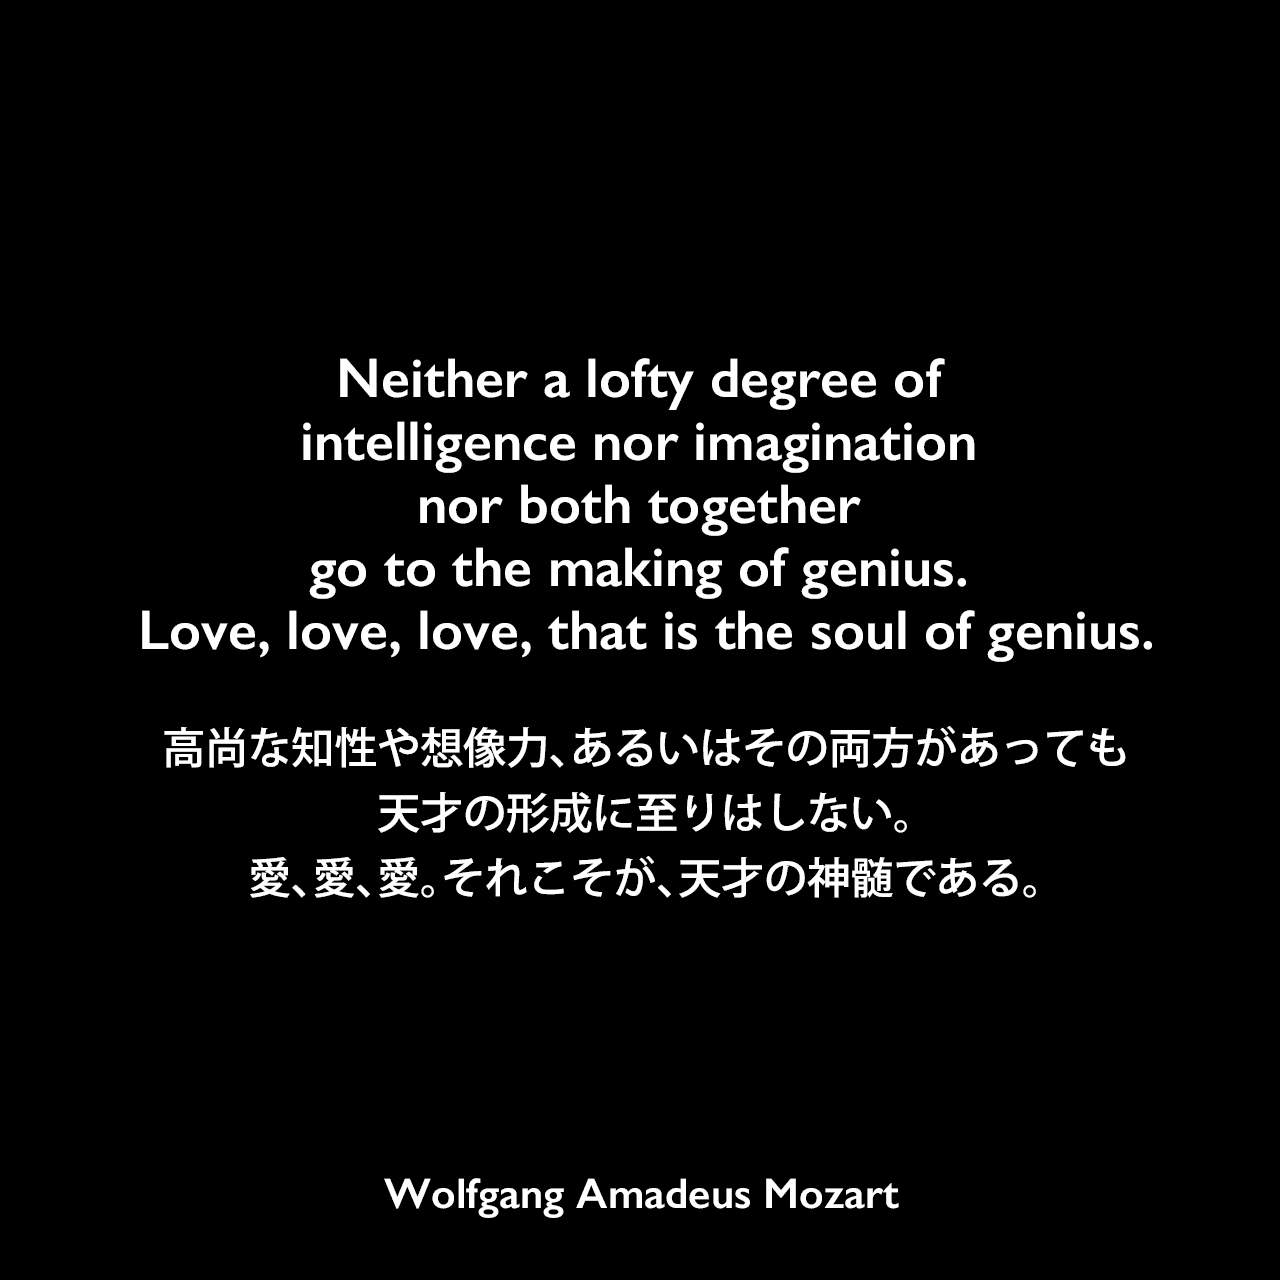 Neither a lofty degree of intelligence nor imagination nor both together go to the making of genius. Love, love, love, that is the soul of genius.高尚な知性や想像力、あるいはその両方があっても天才の形成に至りはしない。愛、愛、愛。それこそが、天才の神髄である。Wolfgang Amadeus Mozart